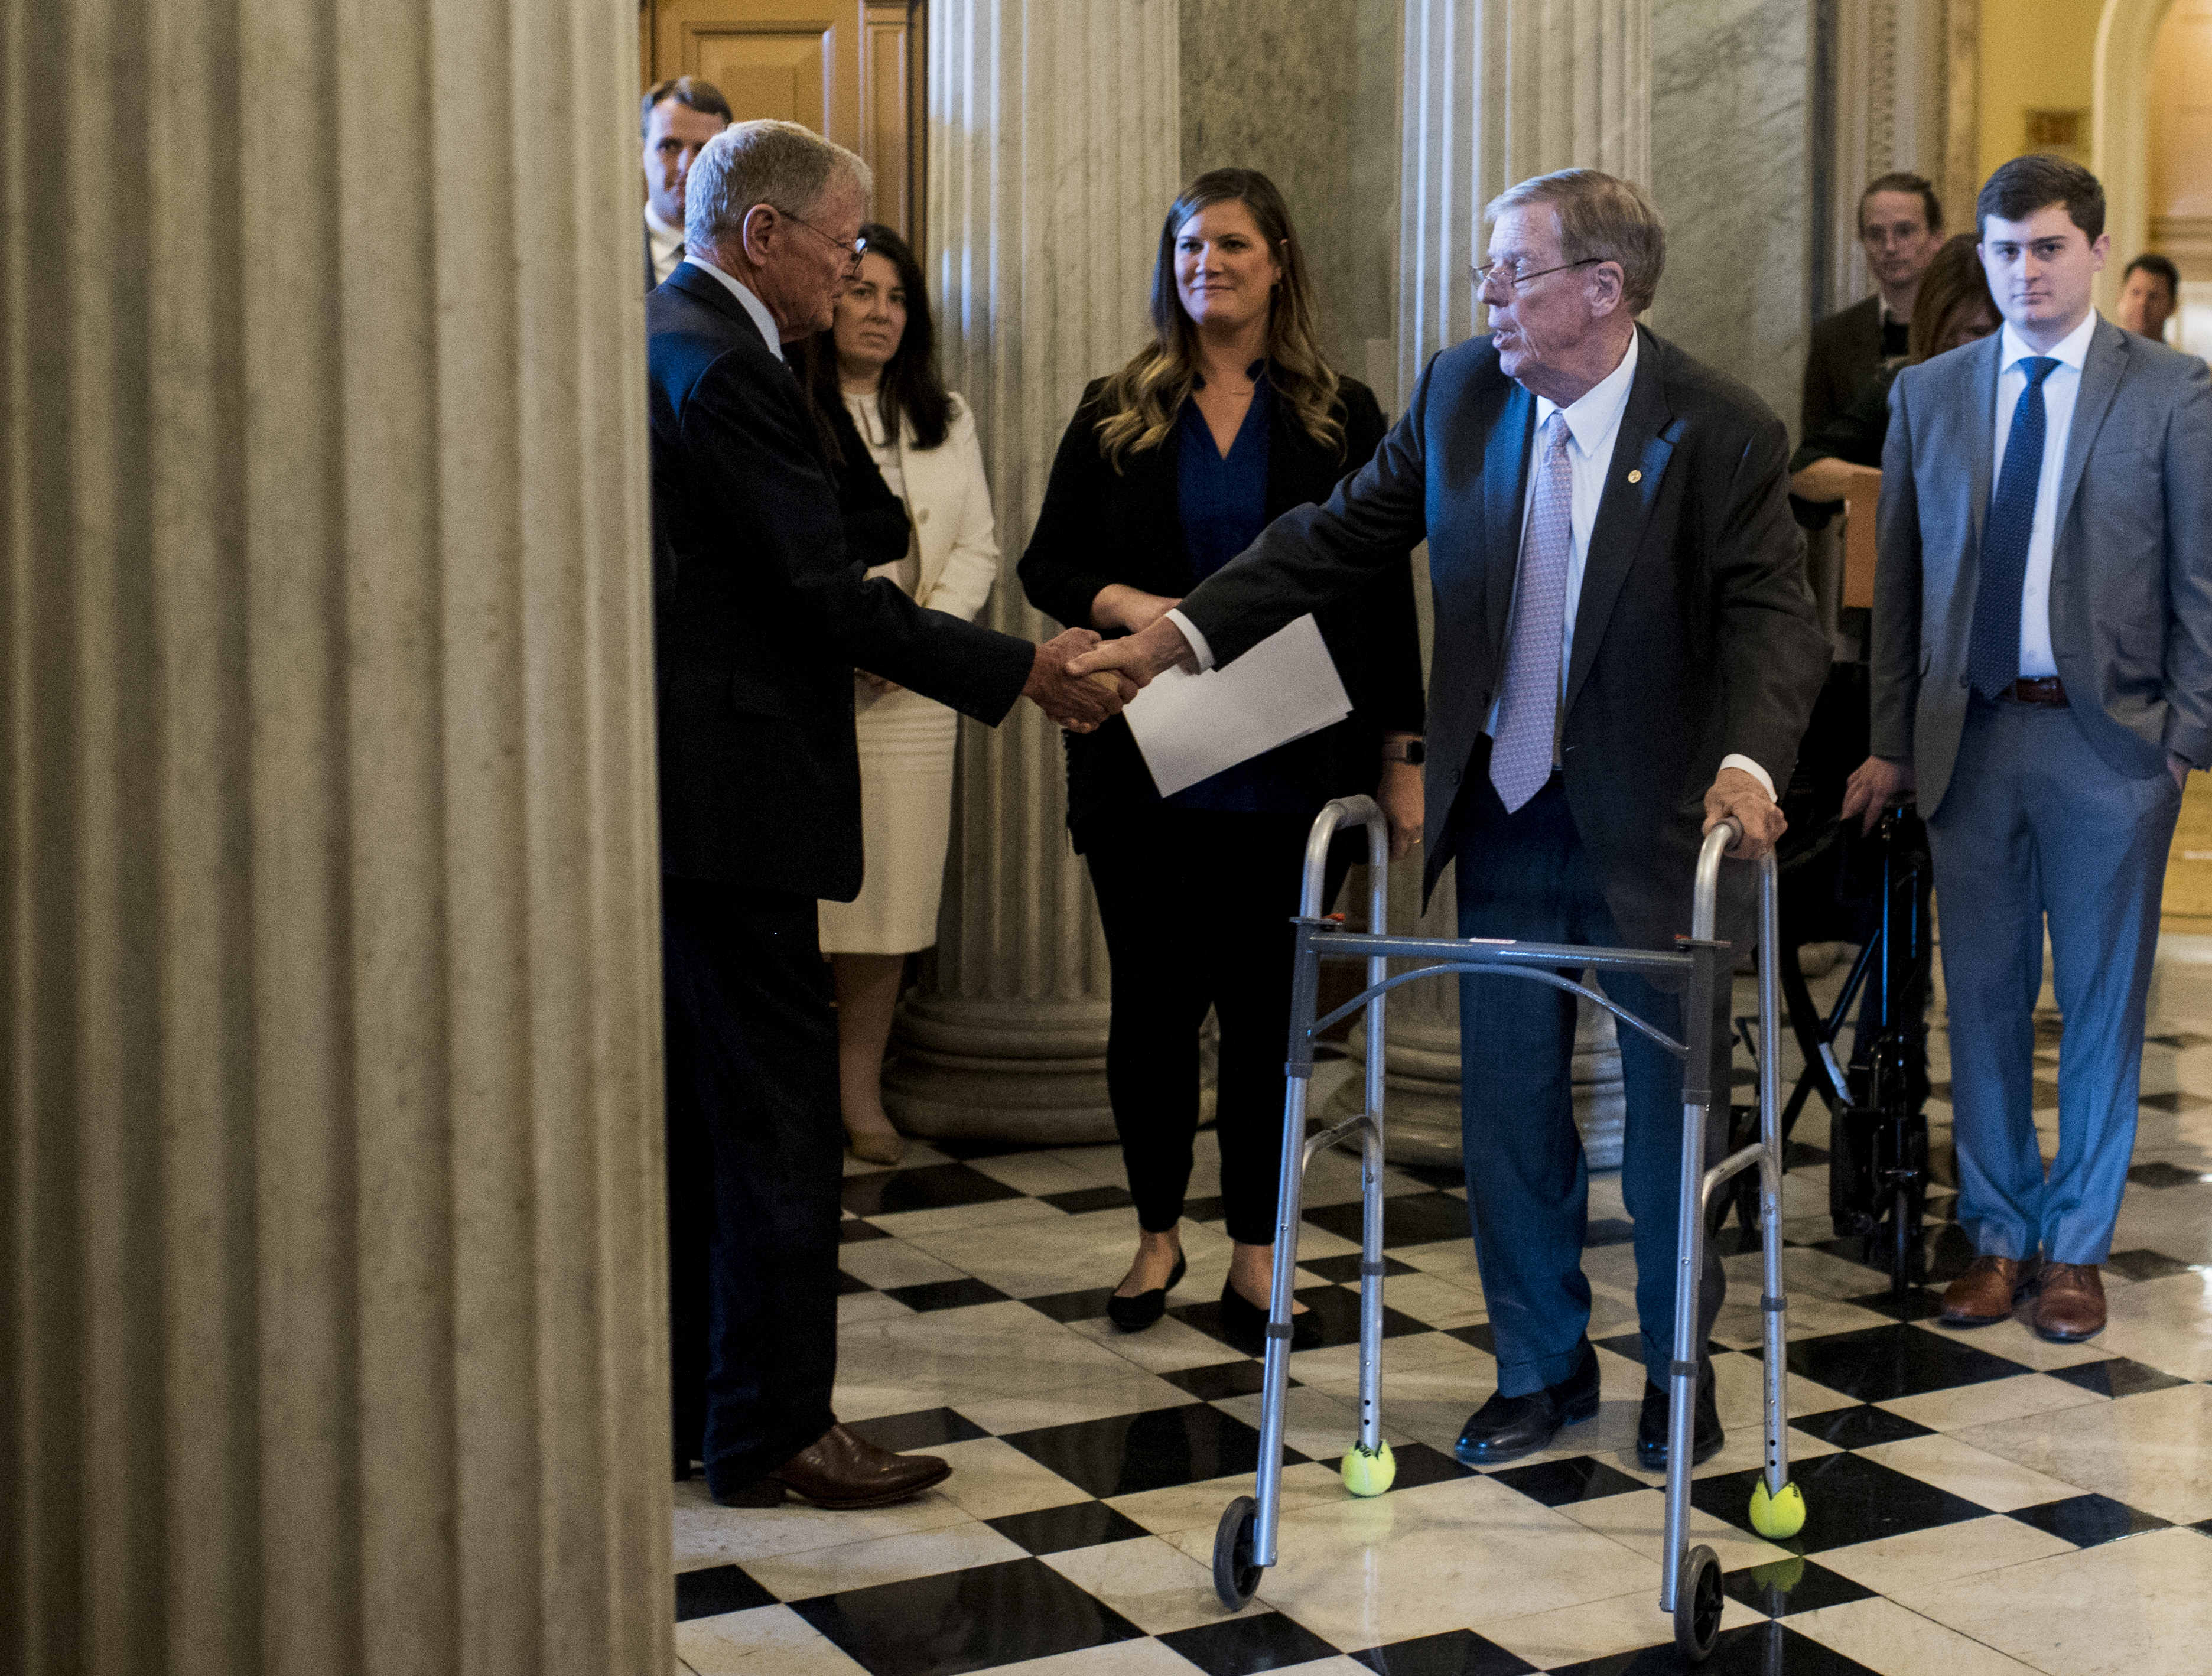 UNITED STATES - DECEMBER 3: Sen. Johnny Isakson, R-Ga., right, shakes hands with Sen. Jim Inhofe, R-Okla., as he walks to the Senate floor to deliver his farewell address in the Capitol on Tuesday, Dec. 3, 2019. (Photo By Bill Clark/CQ Roll Call)